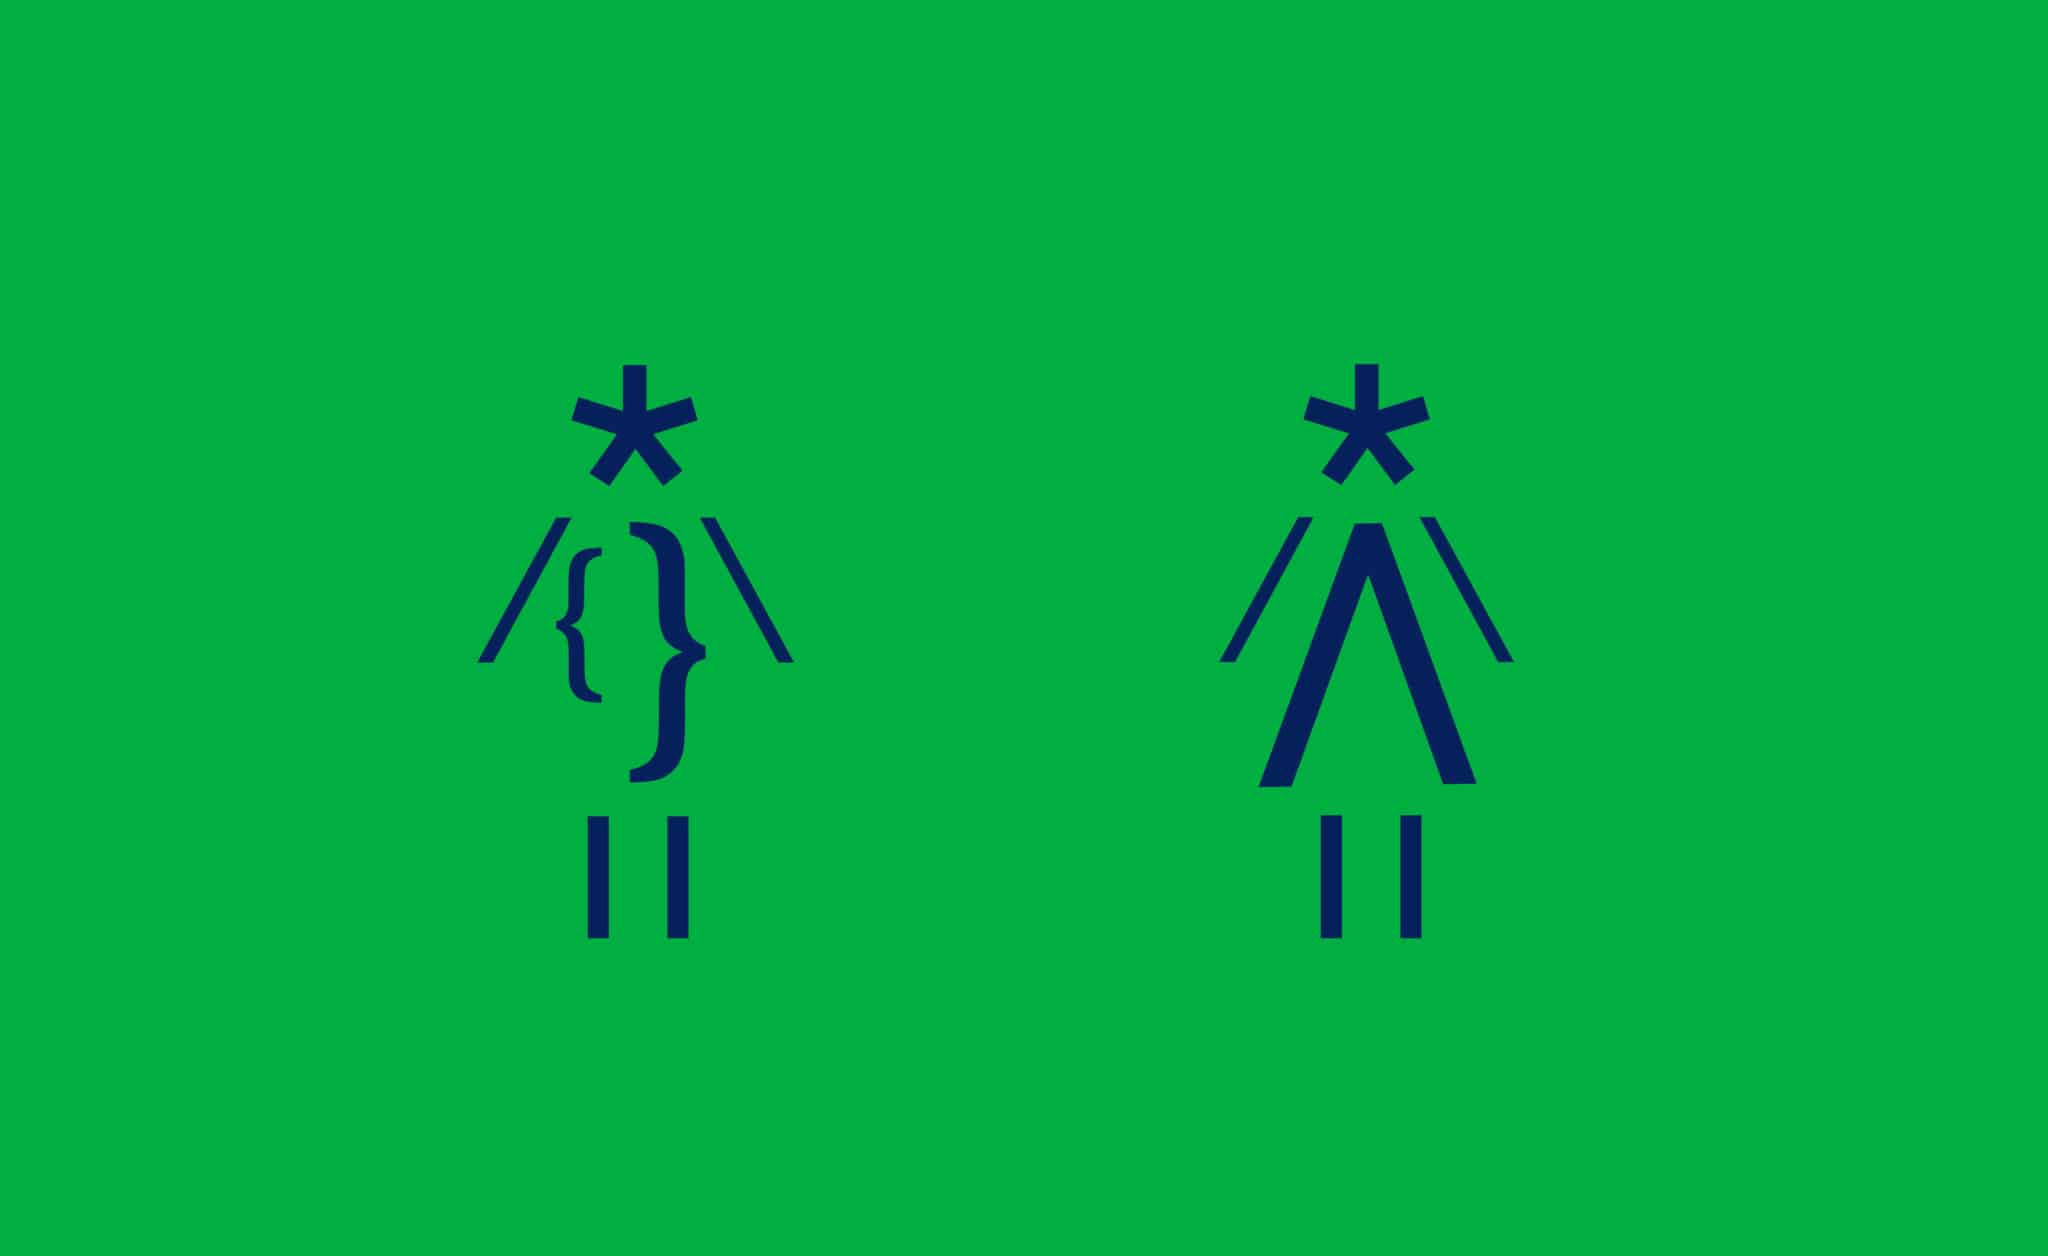 Typographic restroom signage icons for Interabang Books, Dallas | Designed by Field of Study: A branding and graphic design consultancy | Houston TX | Jennifer Blanco & John Earles